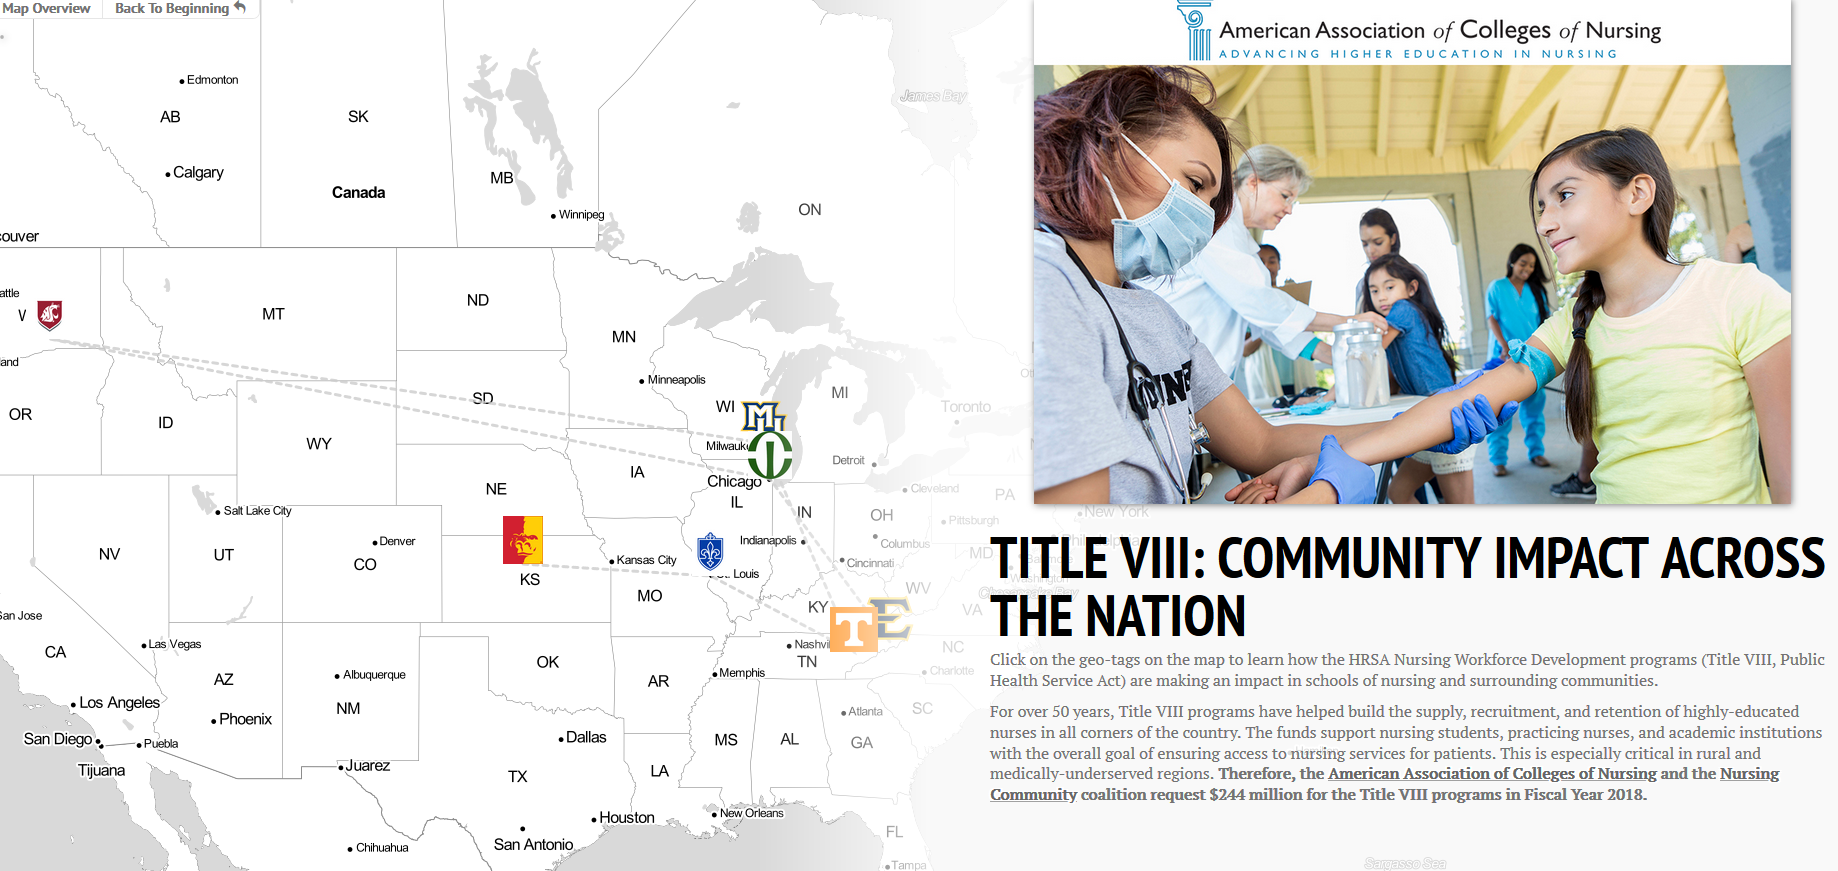 American association of colleges of nursing aacn policy aacn is relaying to congress the ground level community impact of title viii programs view our story map of community profiles from across the nation malvernweather Image collections